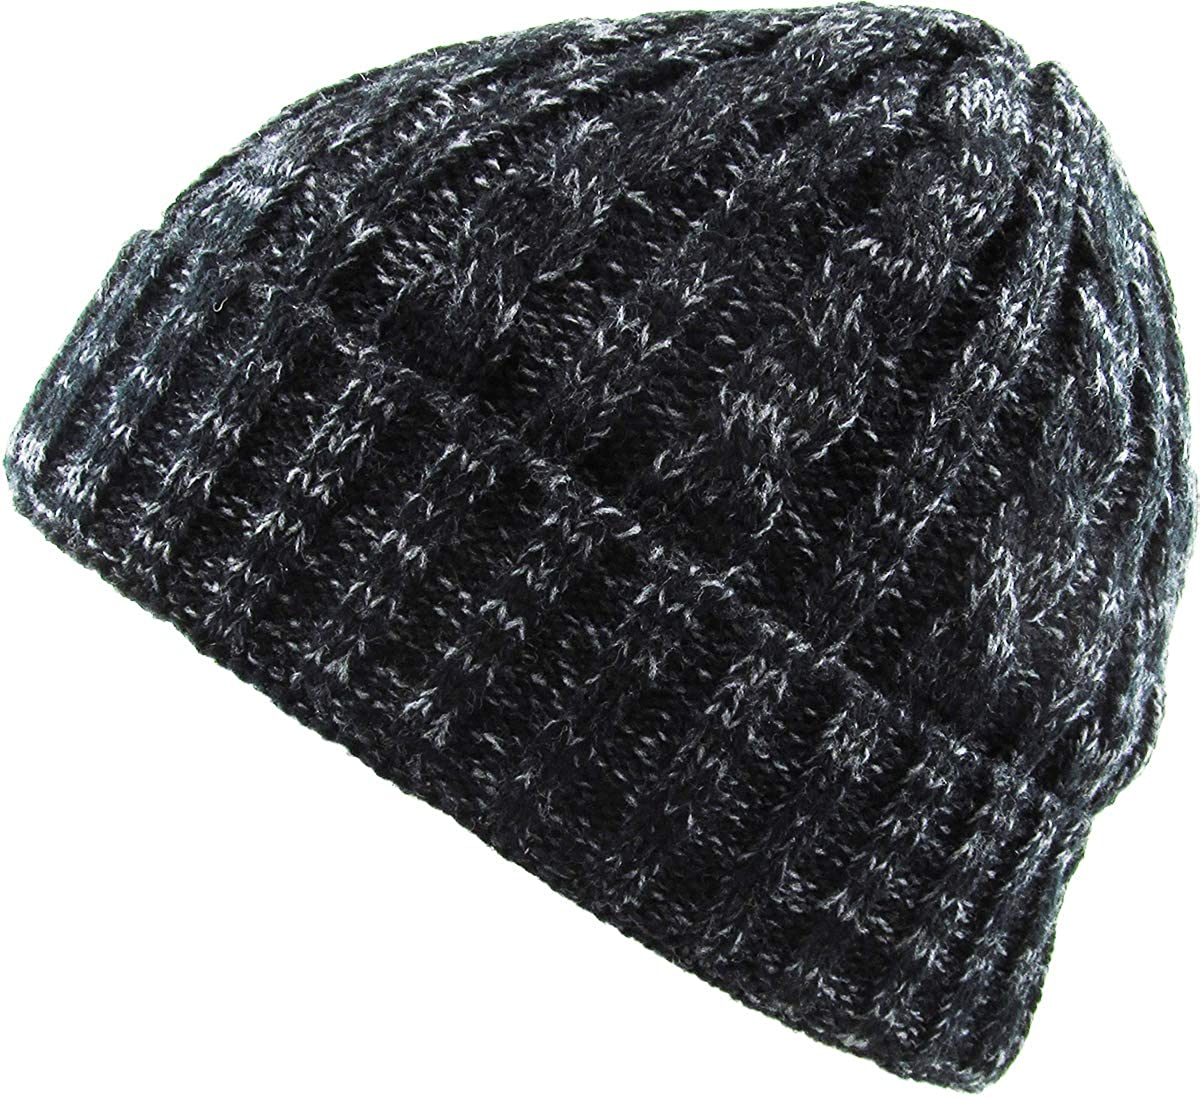 039ca1bcfaa Amazon.com  KBW-245 BLK Heather Color Thick Cable Knit Beanie Skull Cap  Unisex Winter Hat  Clothing